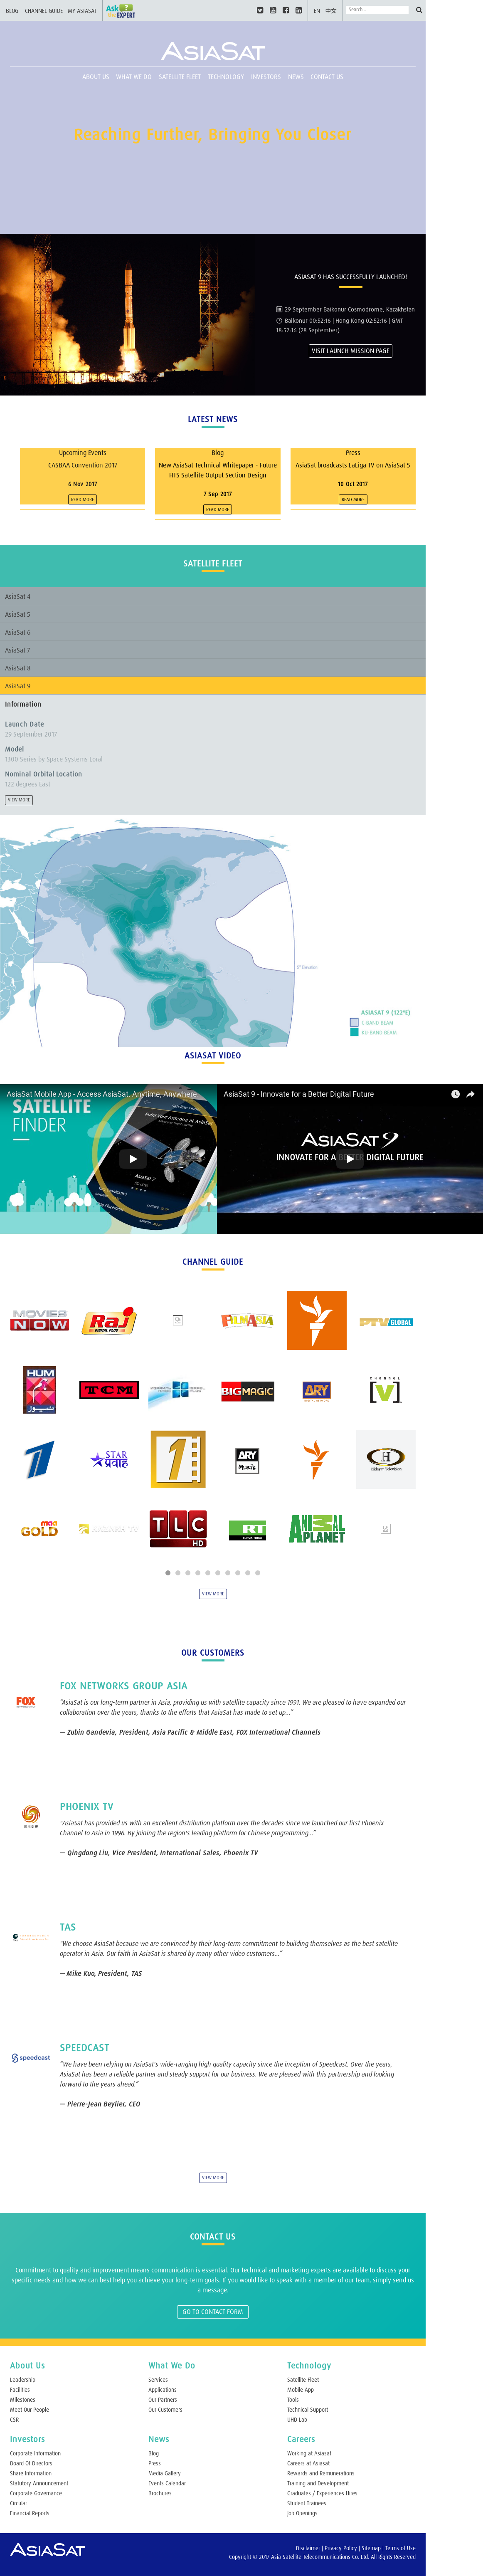 AsiaSat Competitors, Revenue and Employees - Owler Company Profile